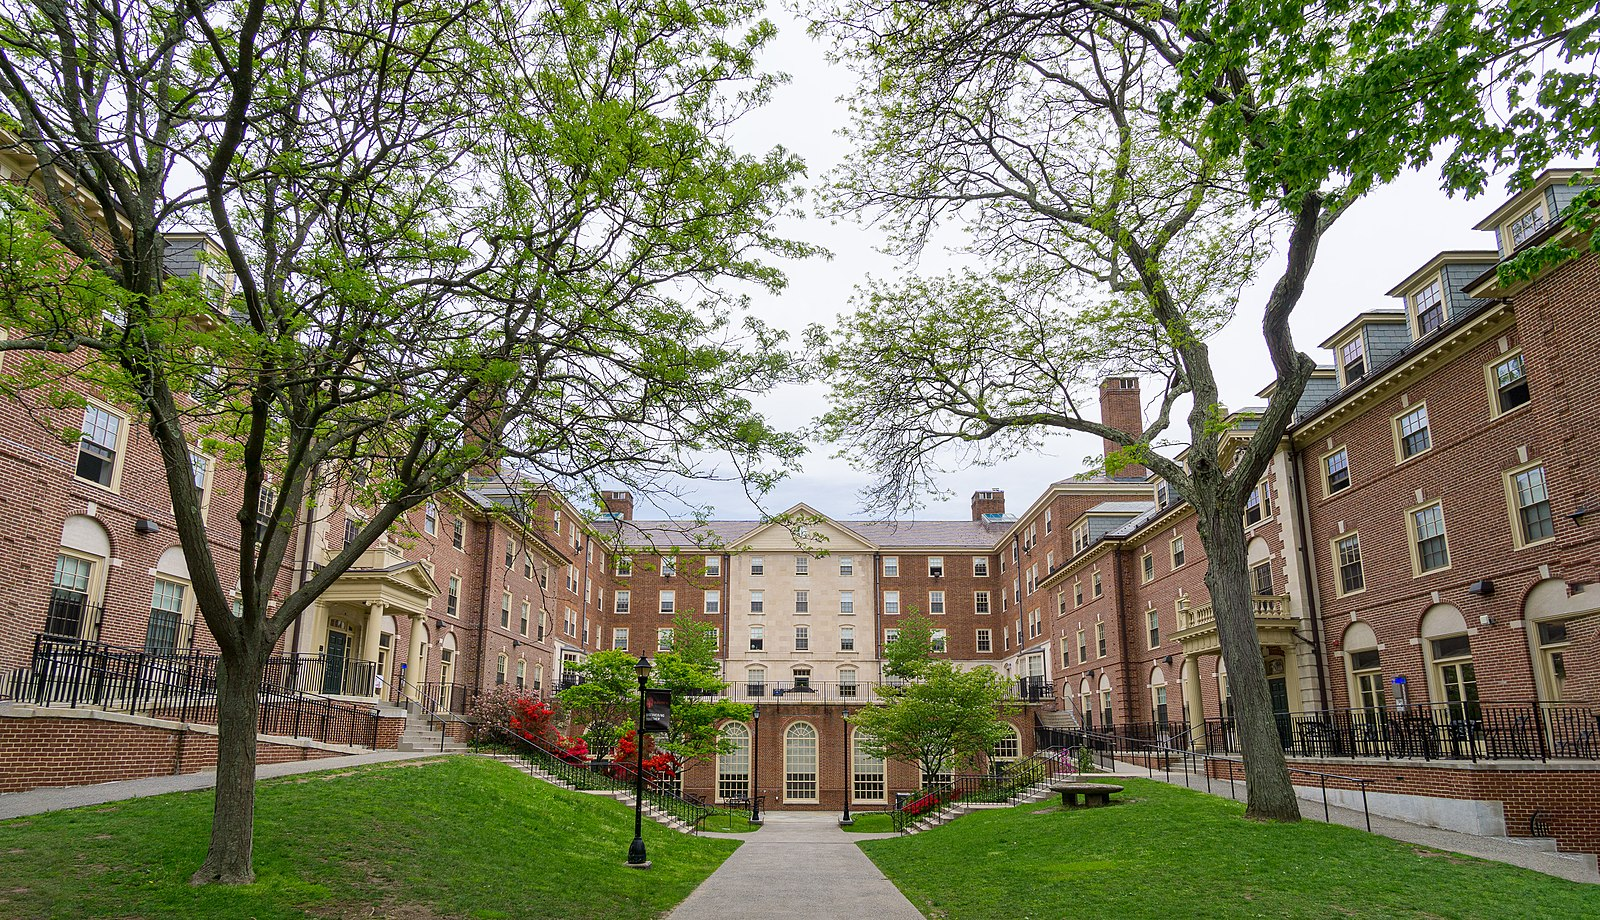 Large red brick building on Brown University's campus